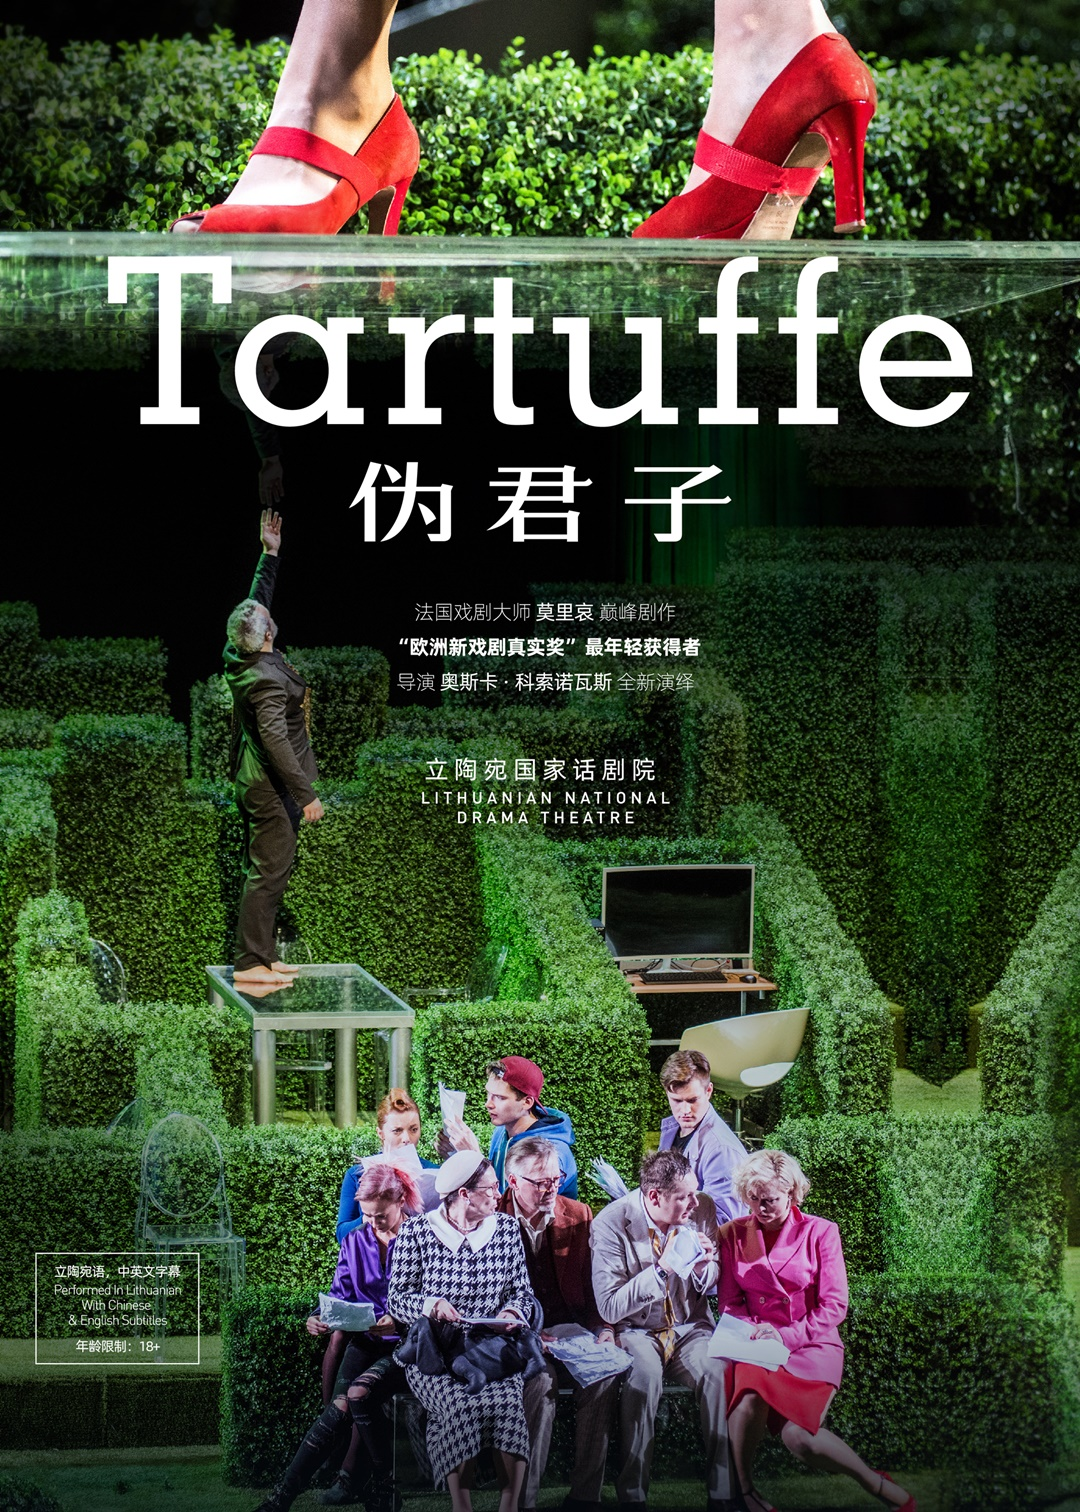 【The 9th Xi'an Theatre Festival    Unlimited】 TARTUFFE by Lithuanian National Drama Theatre